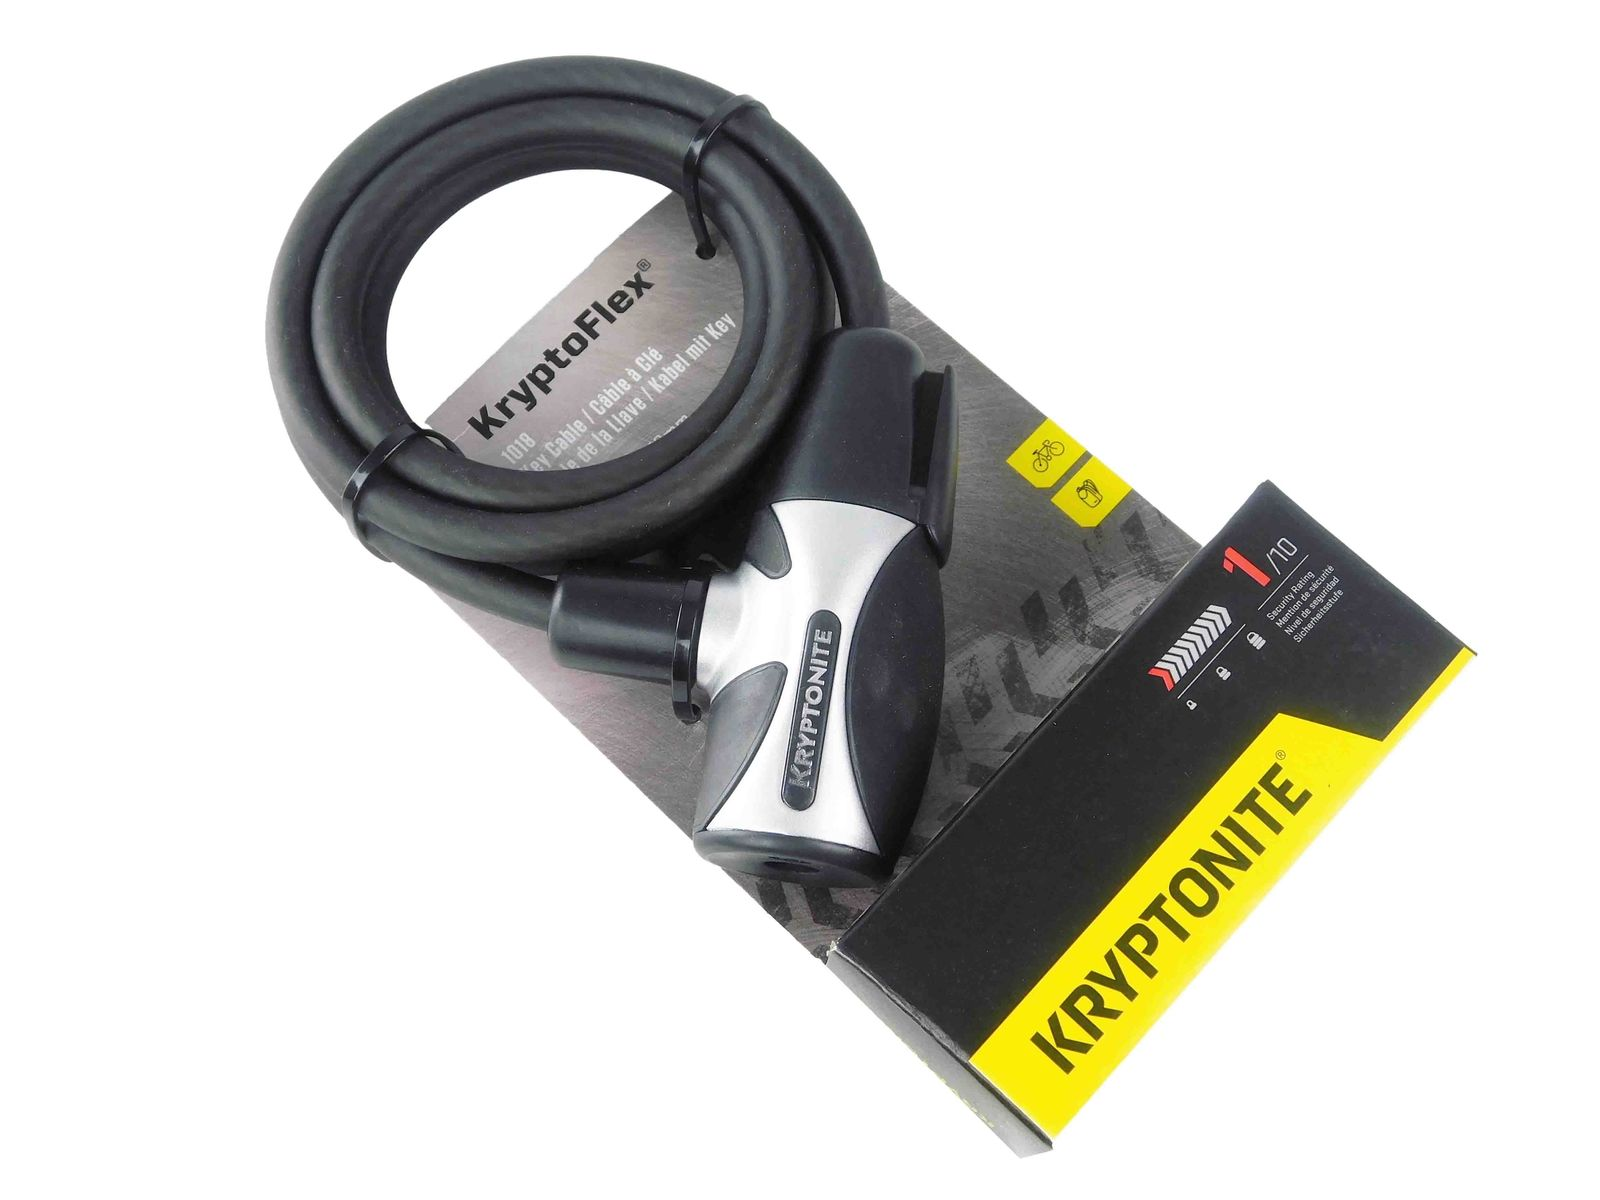 Kryptonite-999805-Kryptoflex-1018-Key-Cable-Bicycle-Lock-10mm-x-6-Foot-image-1